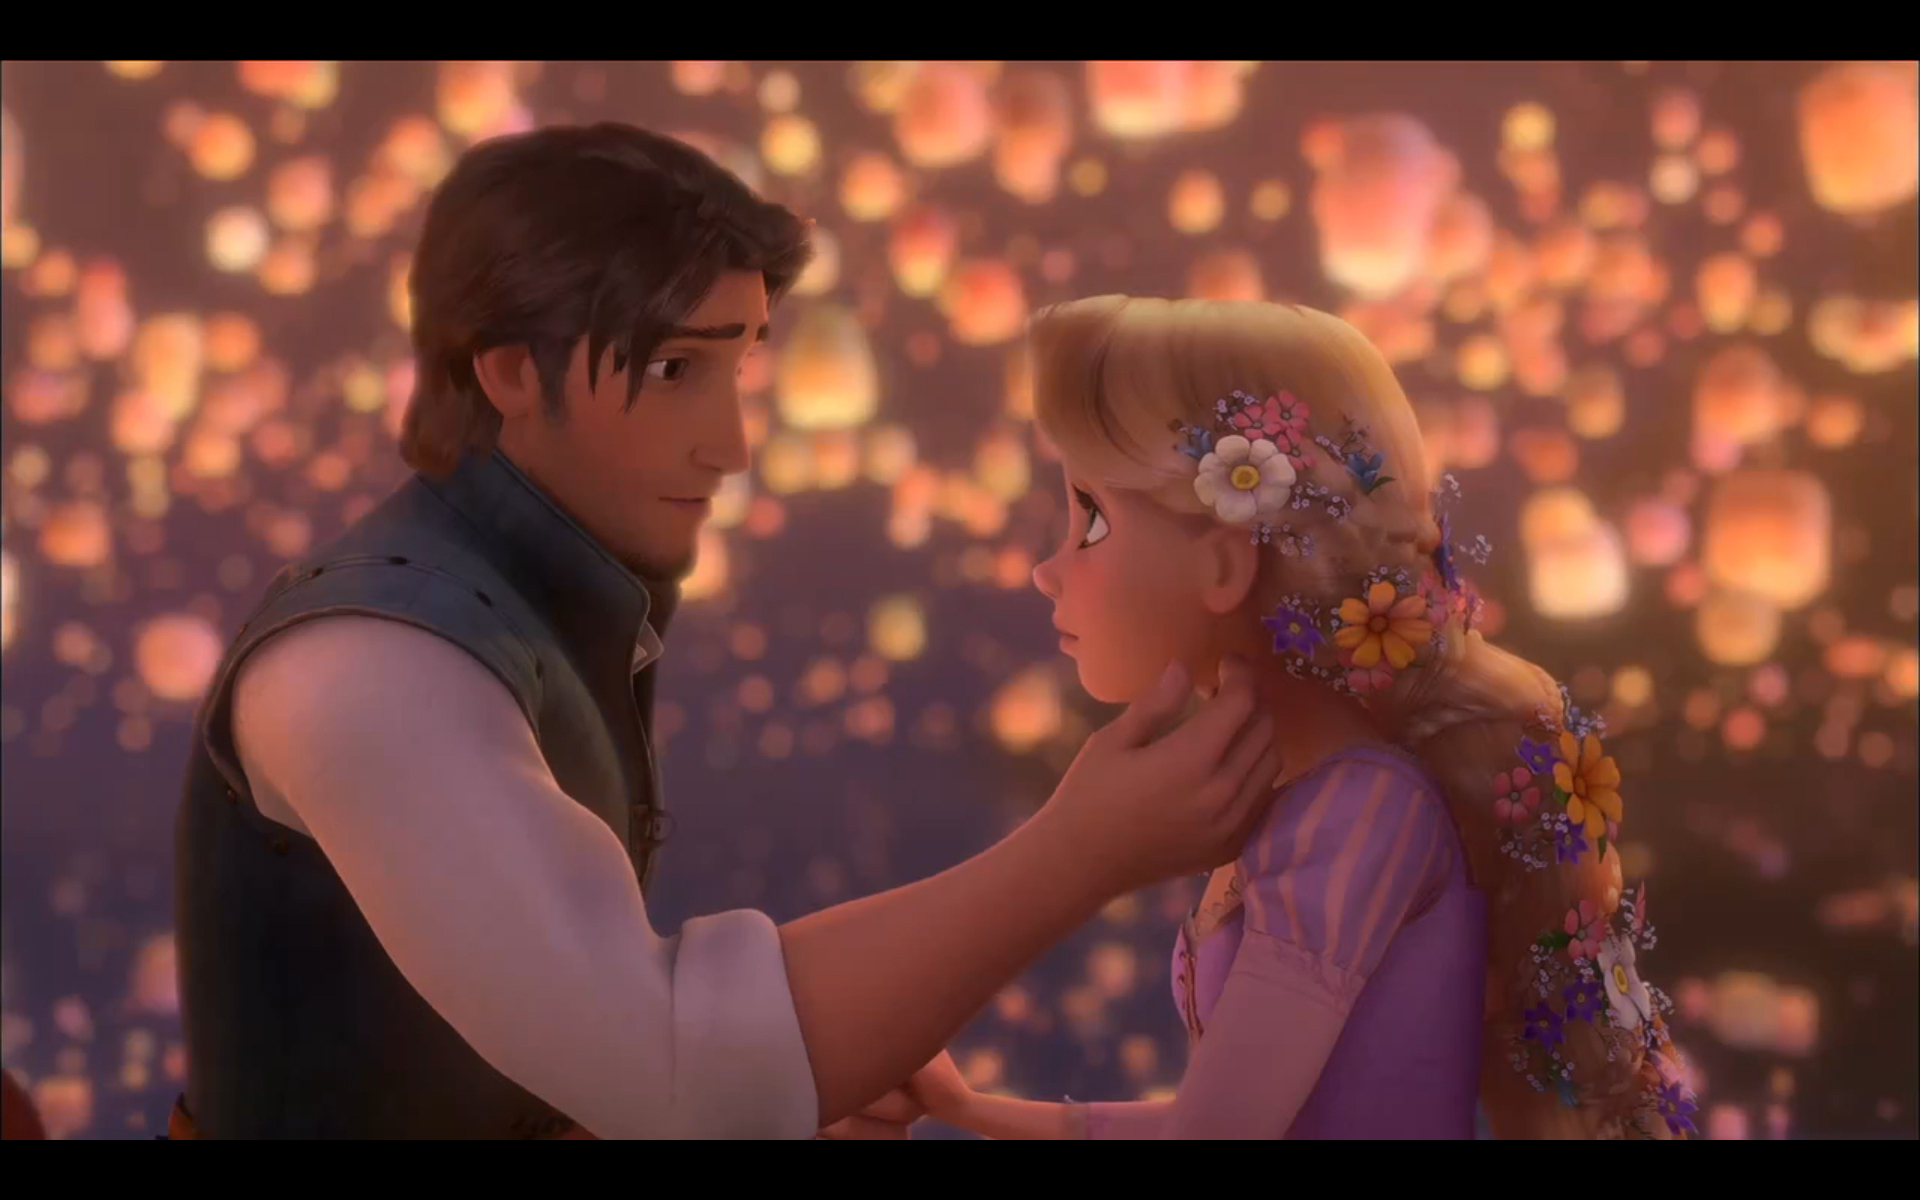 https://i2.wp.com/images4.fanpop.com/image/photos/17000000/Rapunzel-and-Flynn-tangled-17057916-1920-1200.jpg